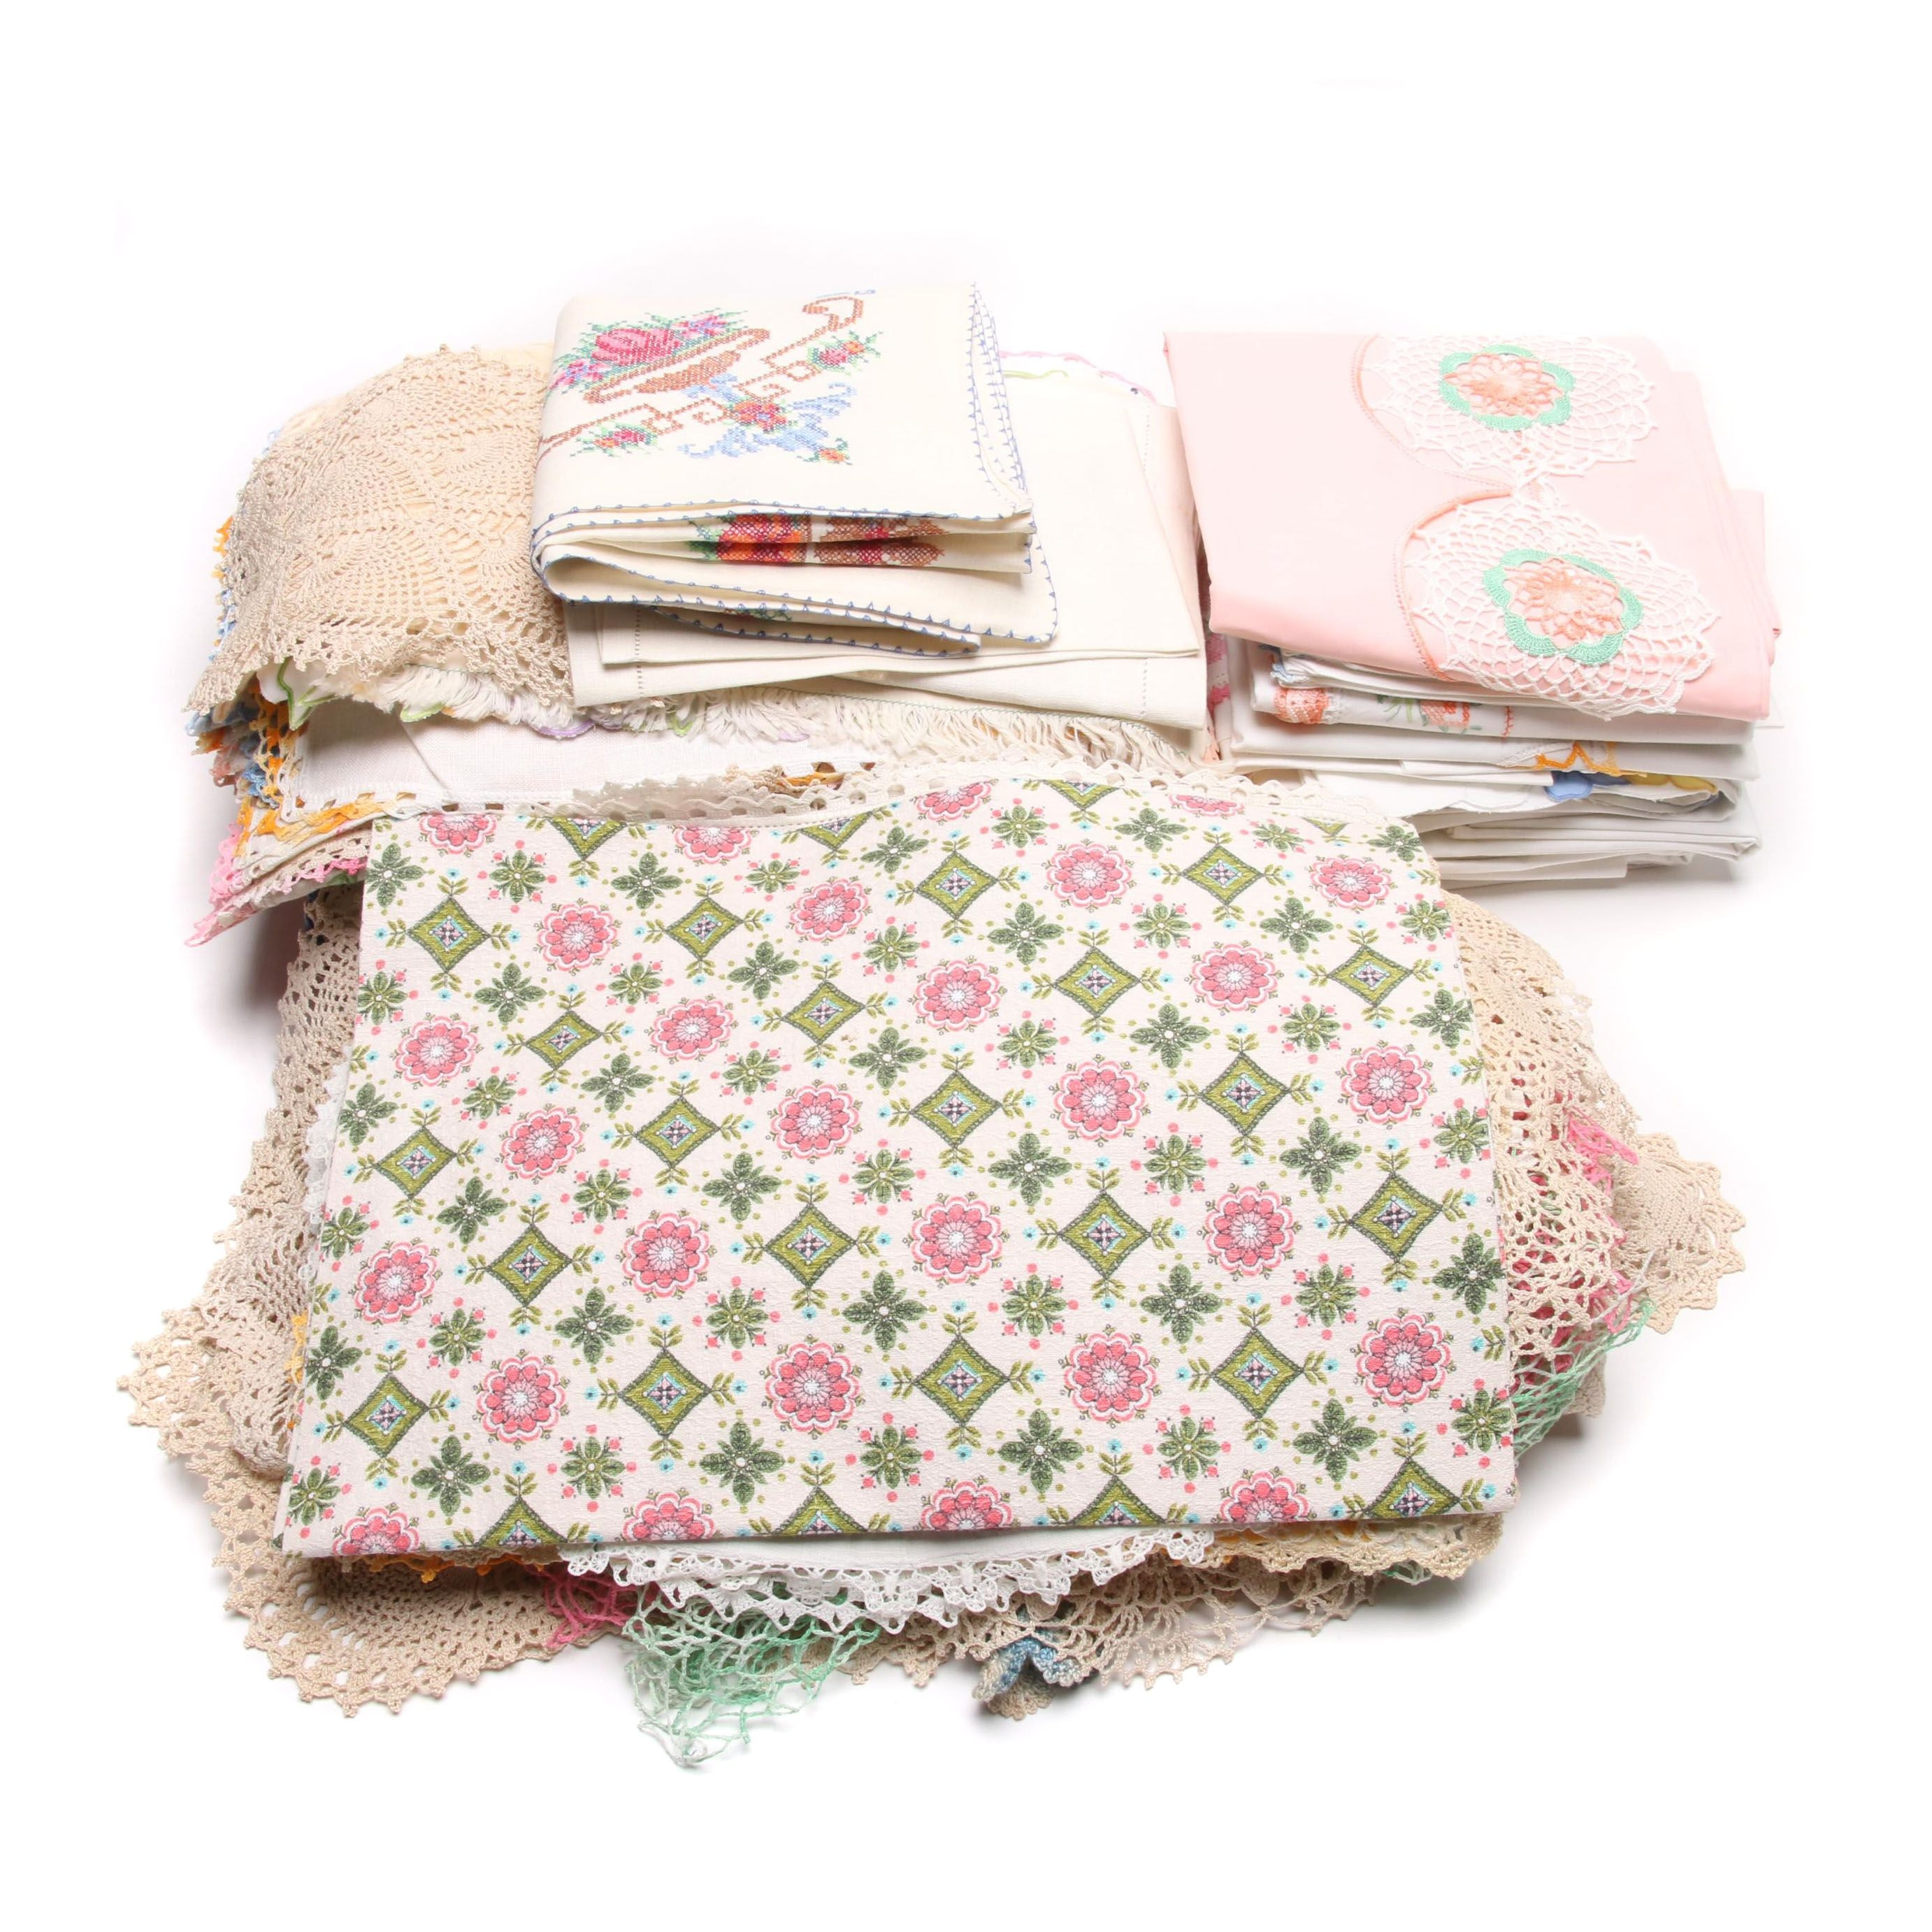 Vintage Table Linens,Textiles and Bedding